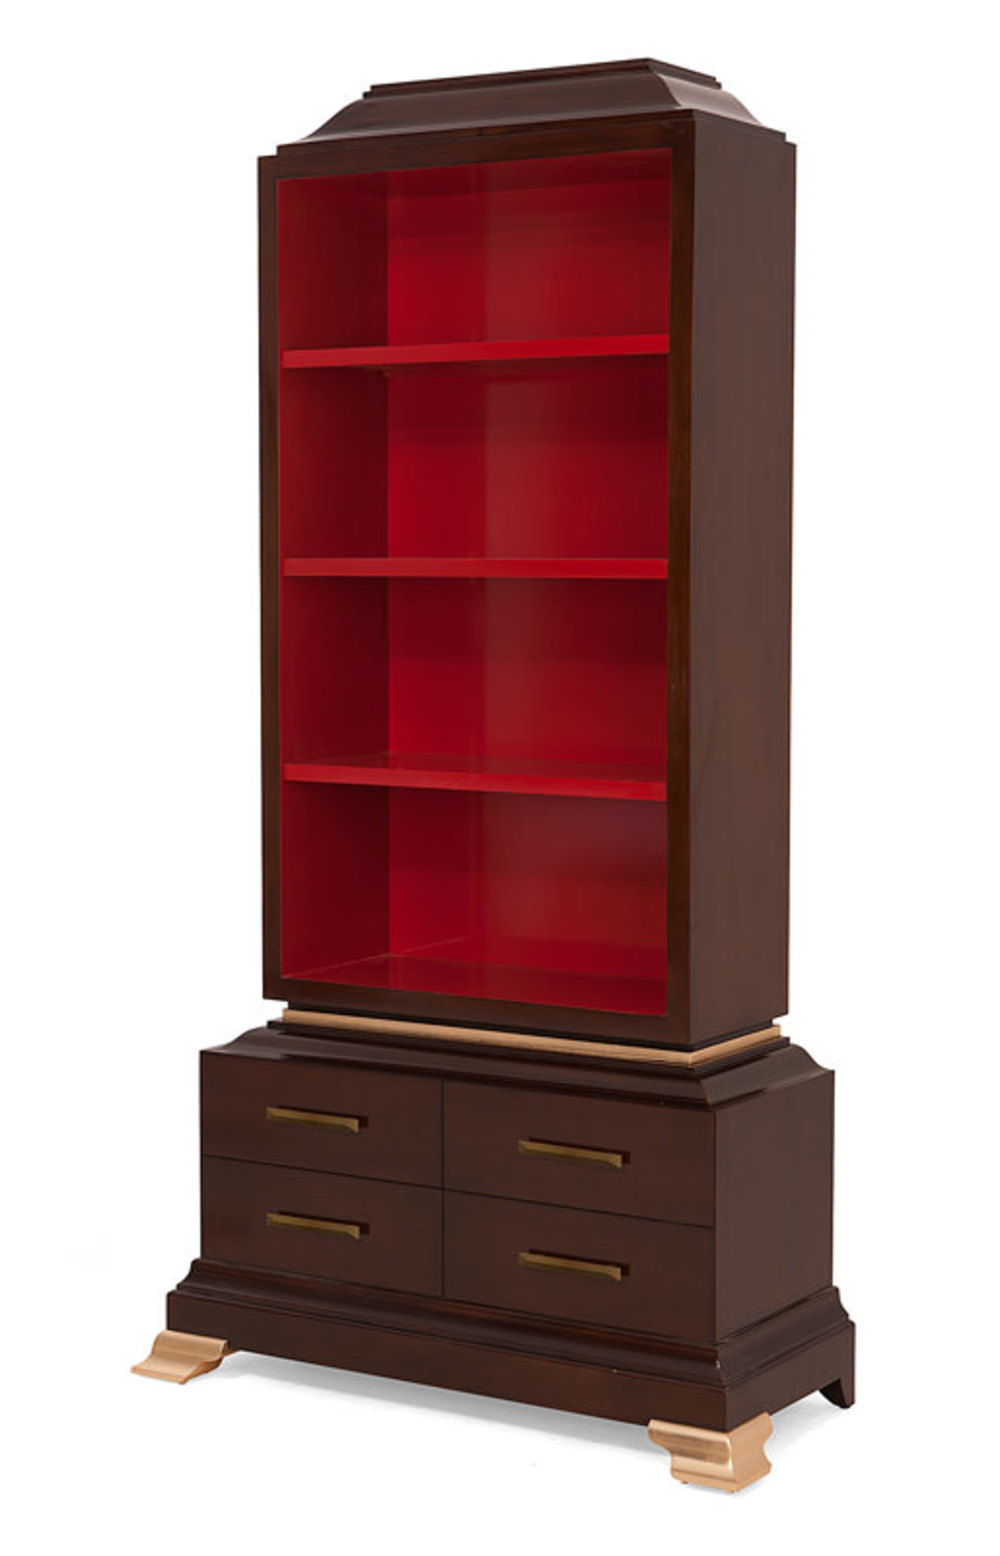 Christopher Guy - Display Case